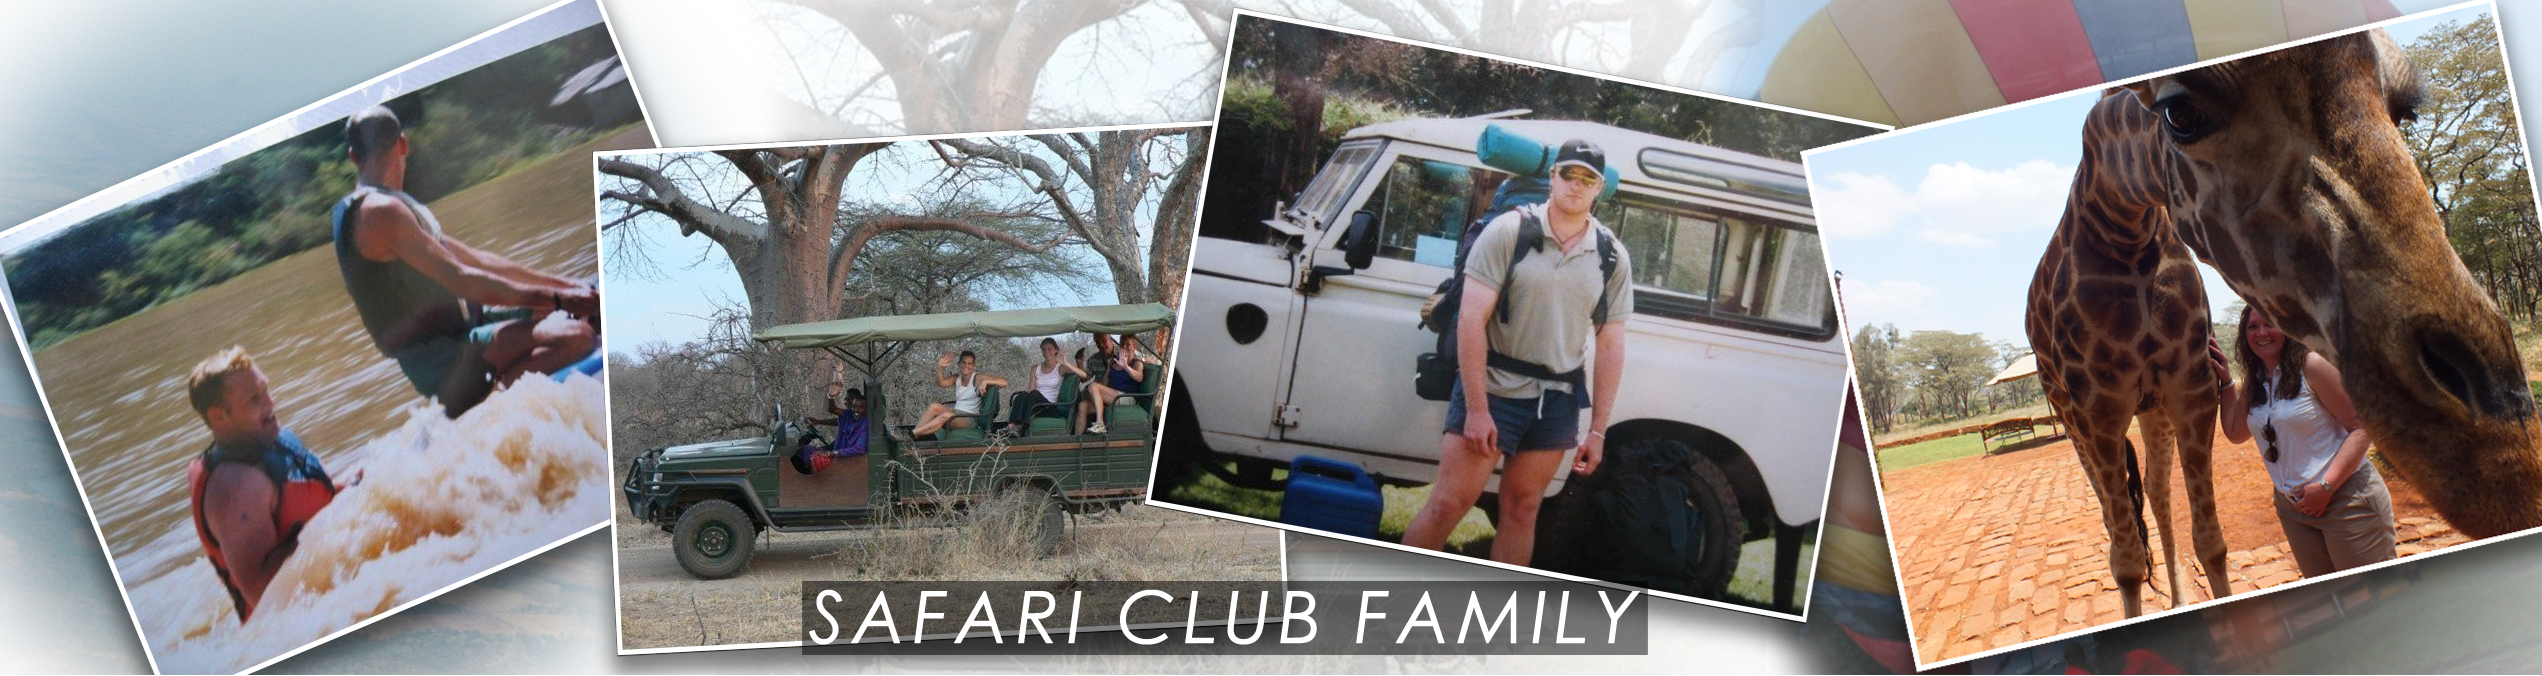 Safari Club Holidays & Tours - about us